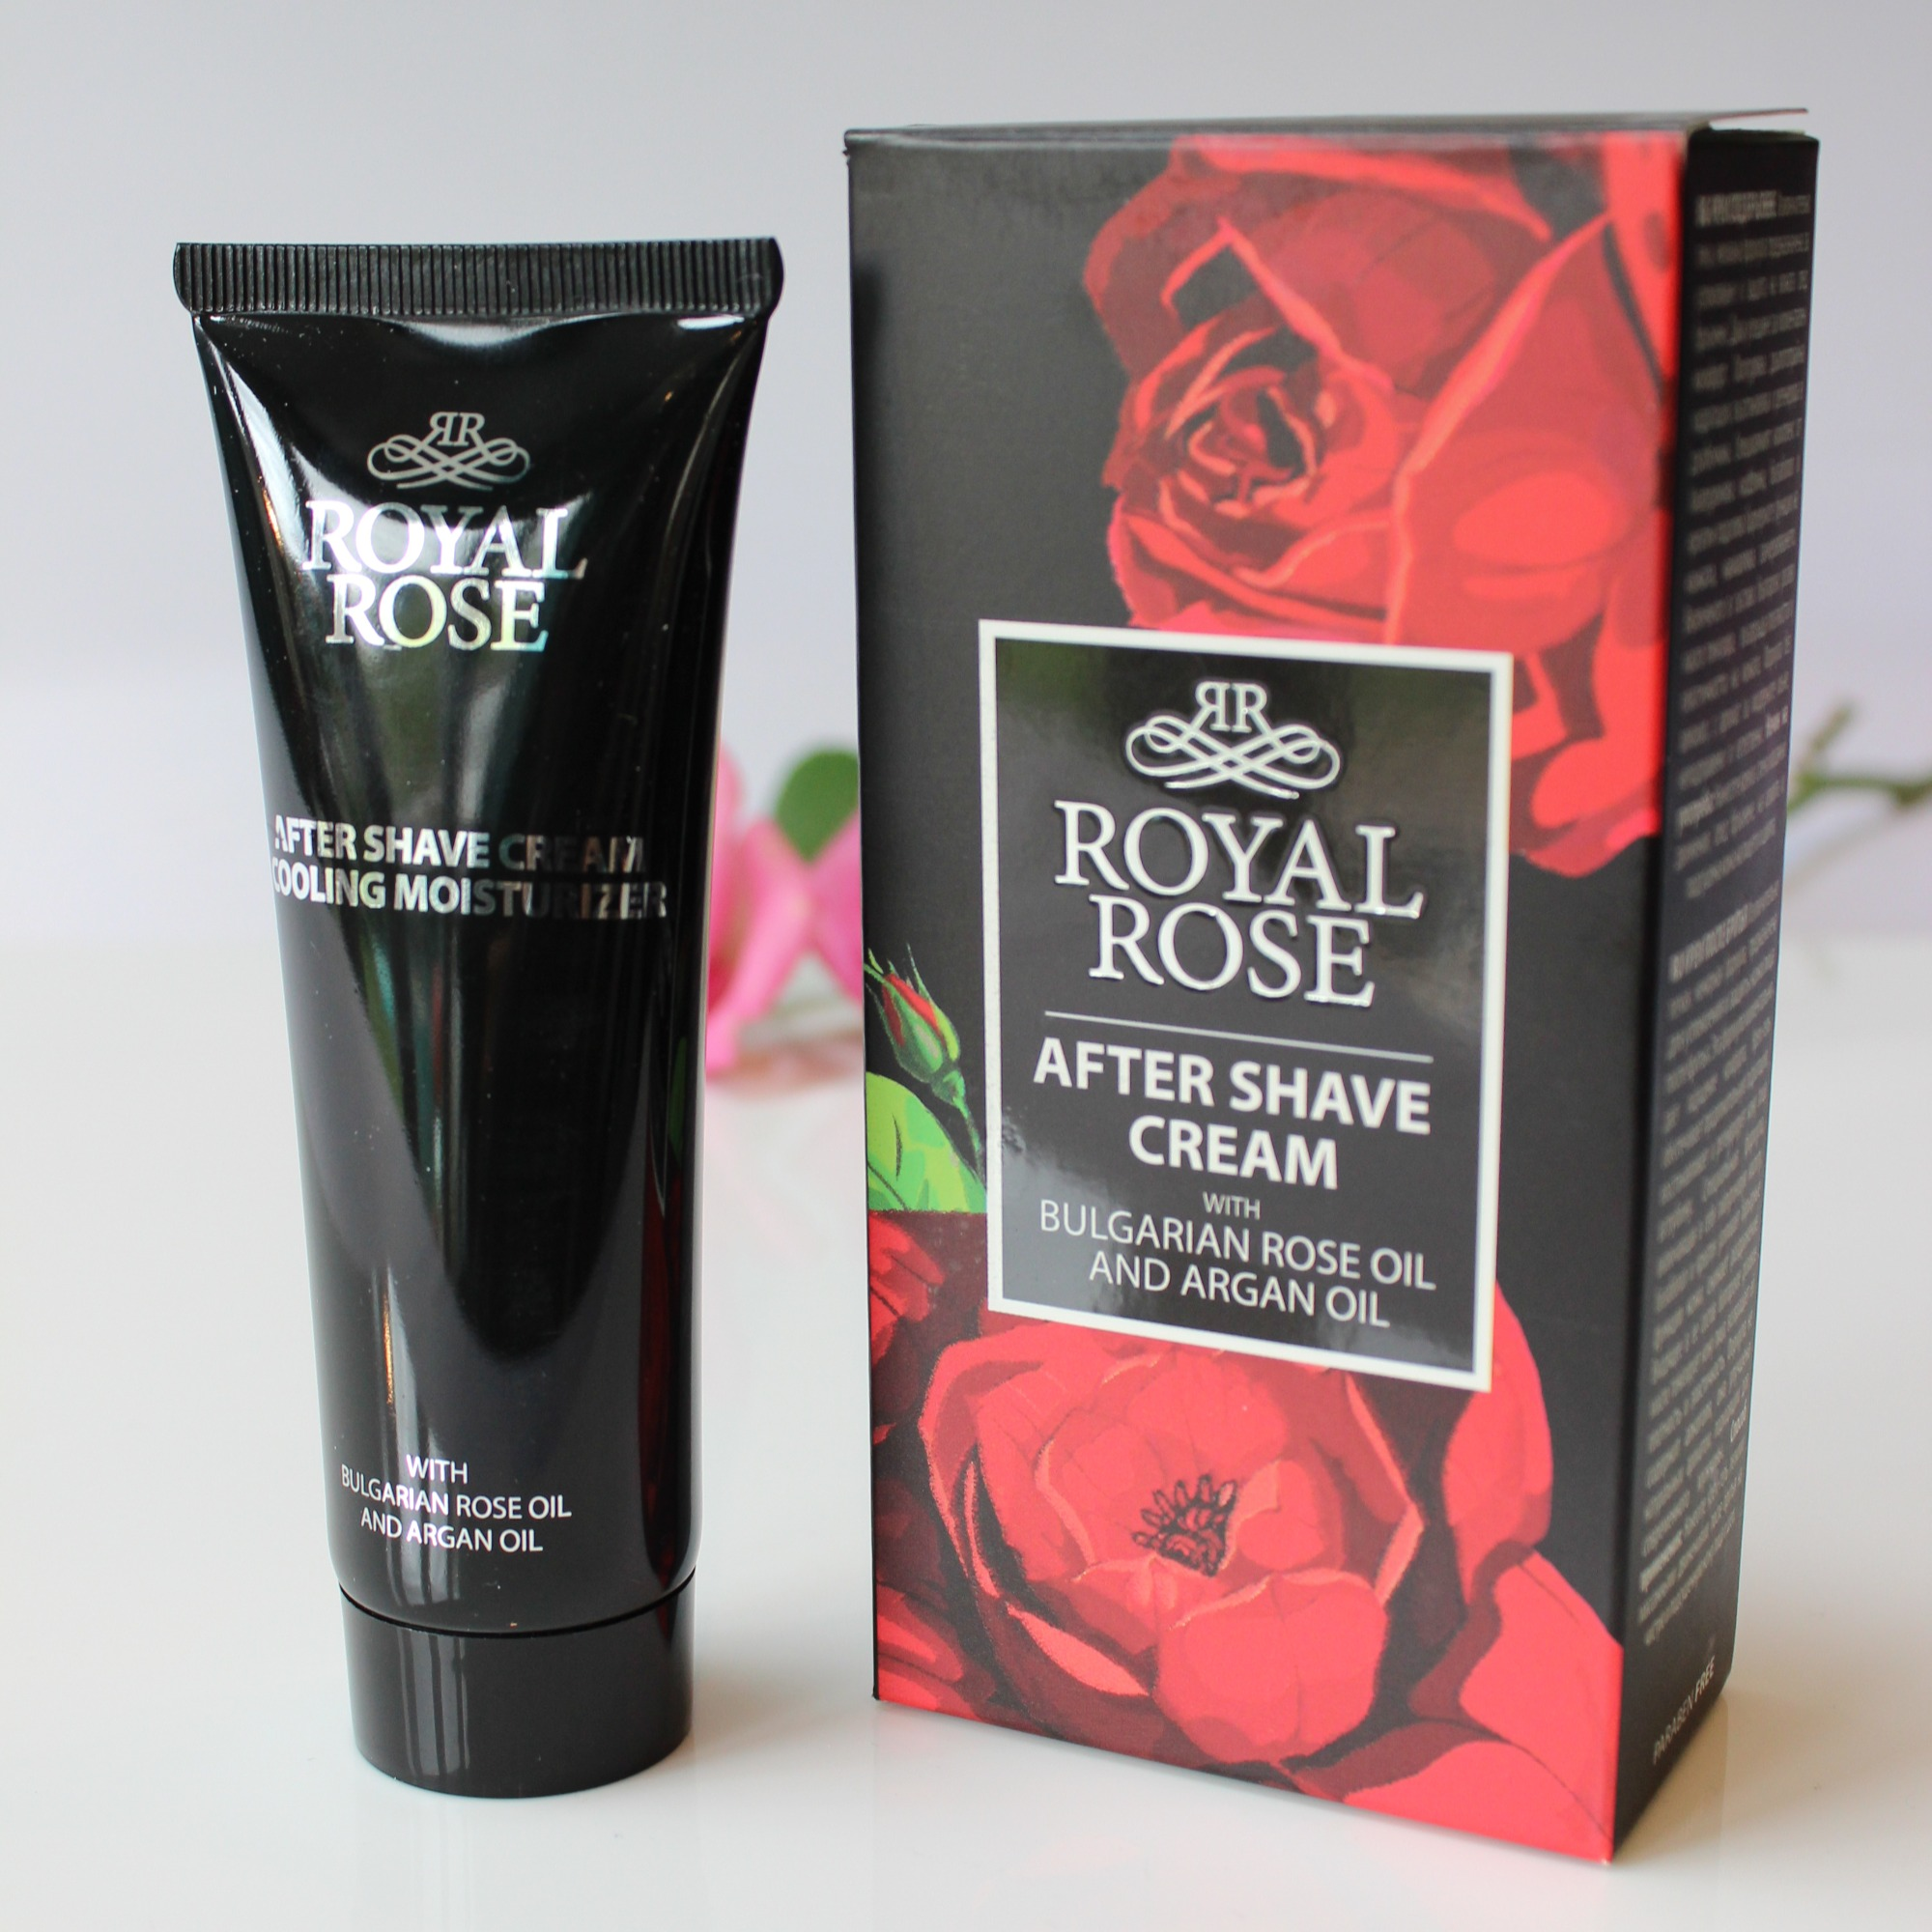 Royal Rose moisturizing hand cream f